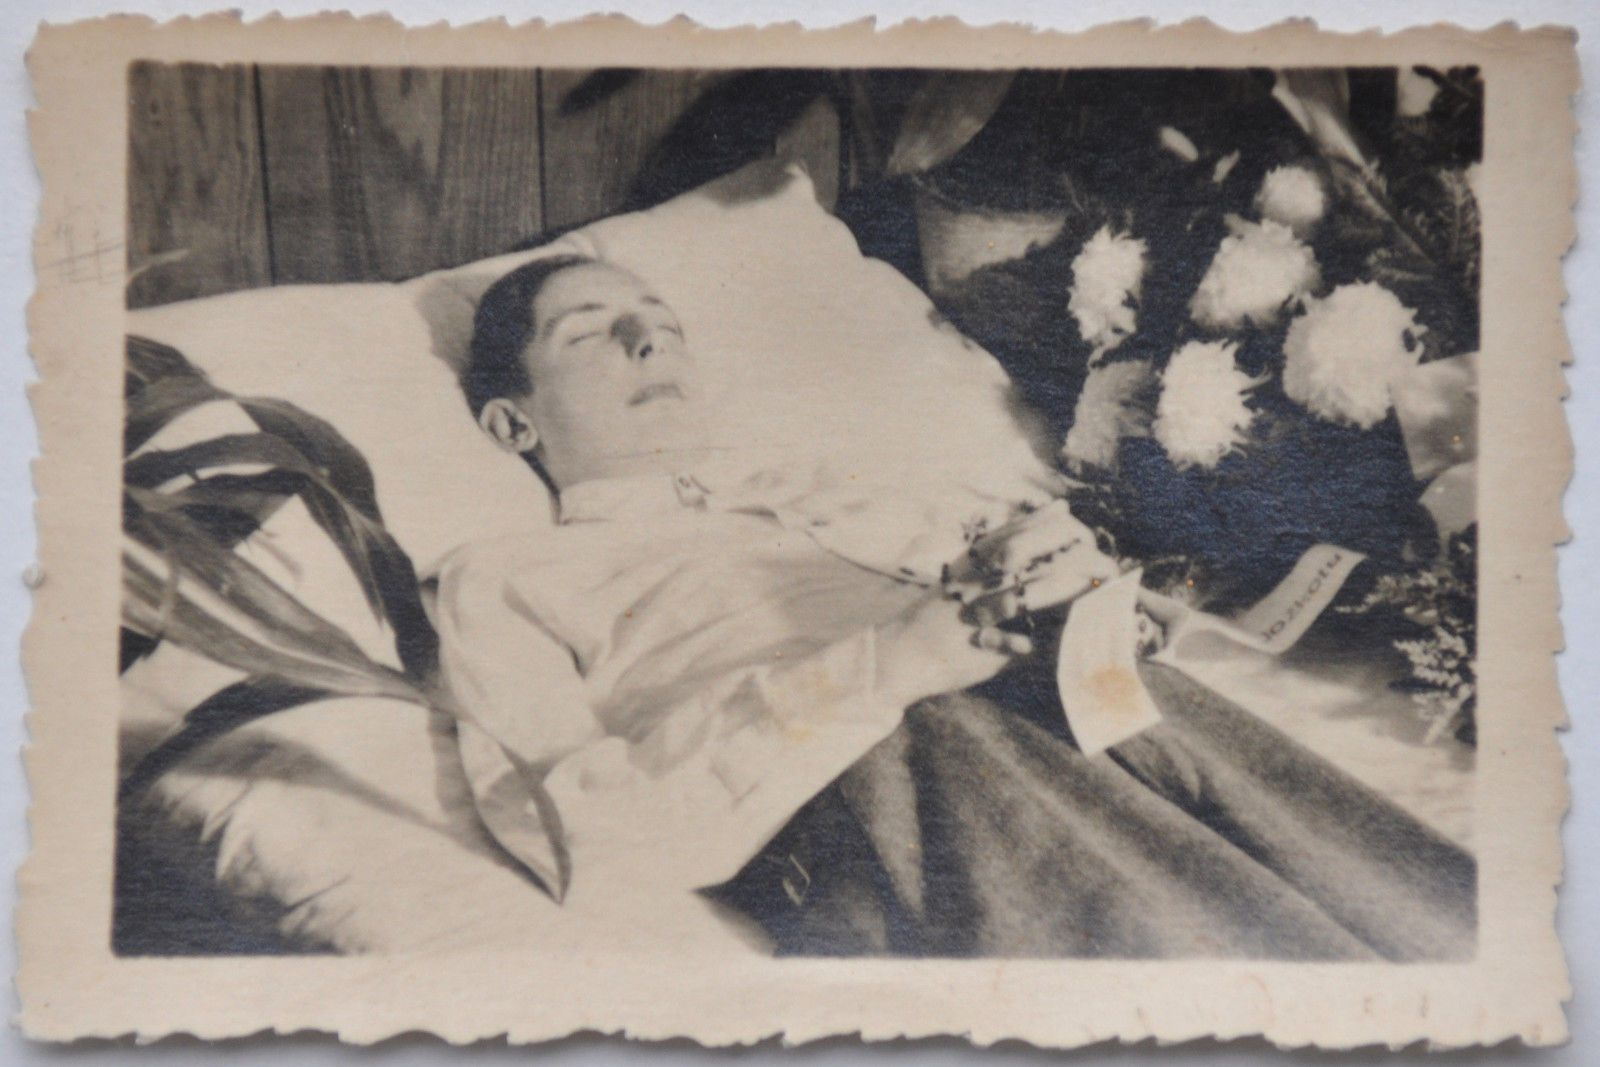 from eastern europe, young woman on deathbed